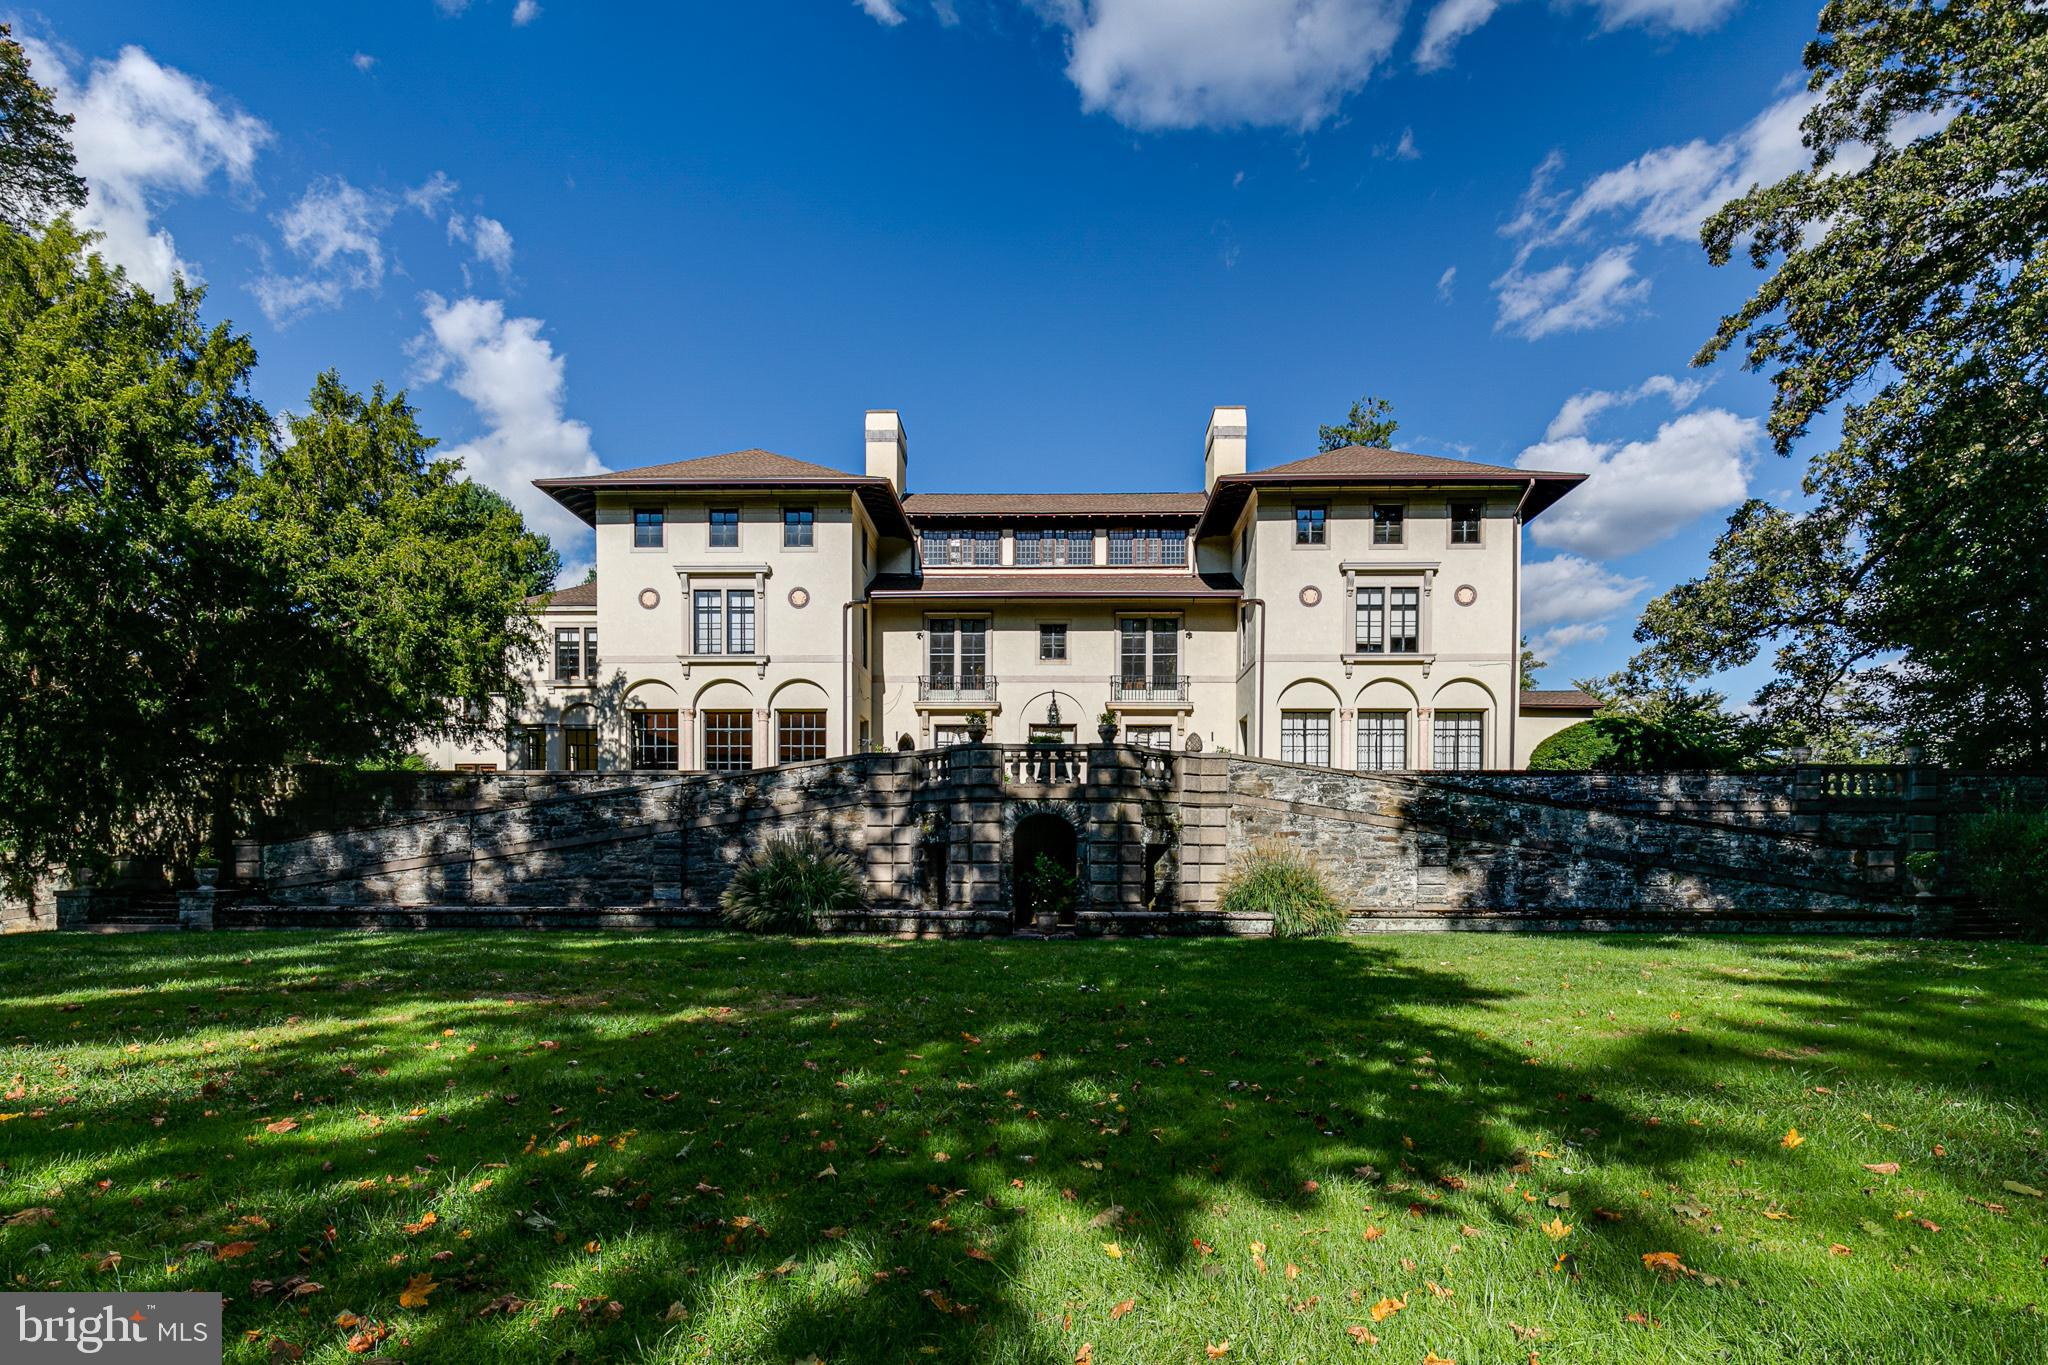 Bright and freshly updated two bed, two bath condo in highly sought after Millridge community. Situated on gorgeous grounds and pristinely maintained, Millridge is a sanctuary centrally located in award-winning Radnor School District. The timeless and gracious manor house overlooks the outdoor pool and is available for guests and events. This top floor unit quietly faces the back of its building, including a balcony with a beautiful view of woodlands to the north. Freshly painted with new HVAC and new hot water heater makes this space utterly turn-key. The roof was completed in 2019. The white kitchen has tile backsplash and room for a rolling island or additional cabinetry. Both bedrooms are spacious with ample closet space. Each has a full, tiled bath. Hardwood floors, crown molding and custom closets finish the space tastefully. There is a laundry room in the unit and a large storage space in the basement.  Millridge offers a lifestyle with neighborhood events and groups. This is an oasis minutes away from major roadways, trains, shopping and restaurants.